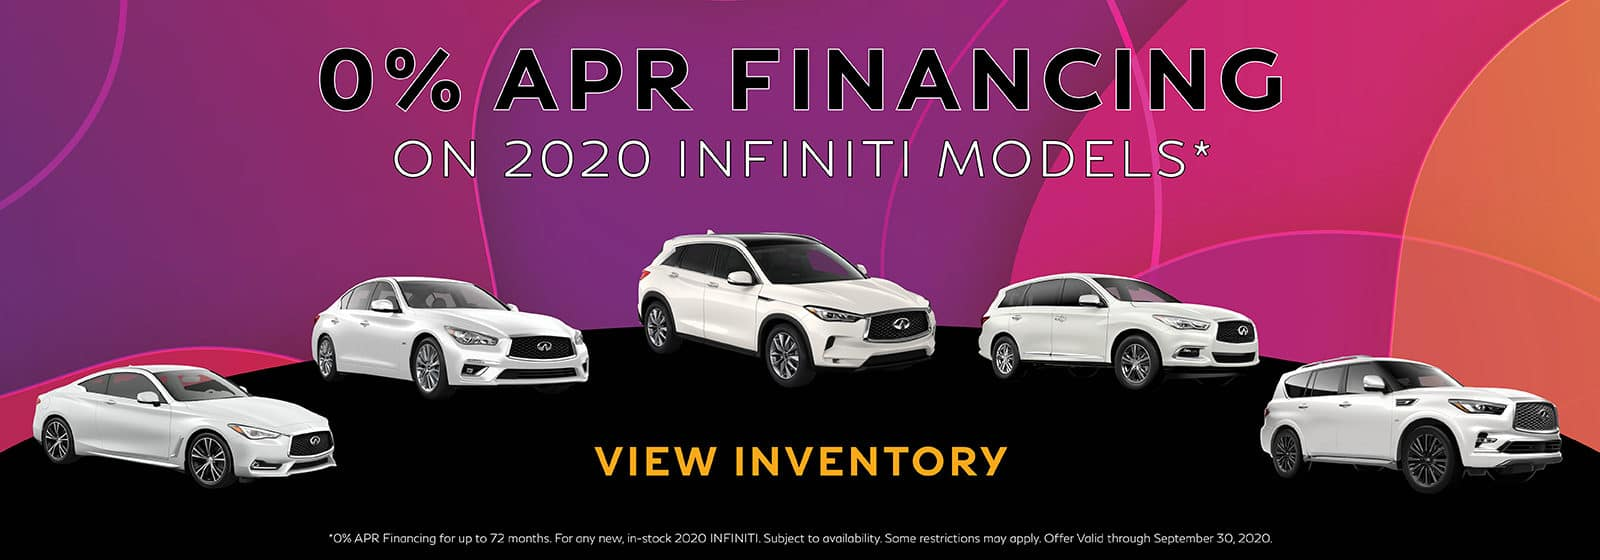 0% on new, in-stock 2020 INFINITI models.* **0% APR Financing for up to 72 months. For any new, in-stock 2020 INFINITI. Subject to availability. Some restrictions may apply. Offer Valid through September 30, 2020. Click to view inventory.